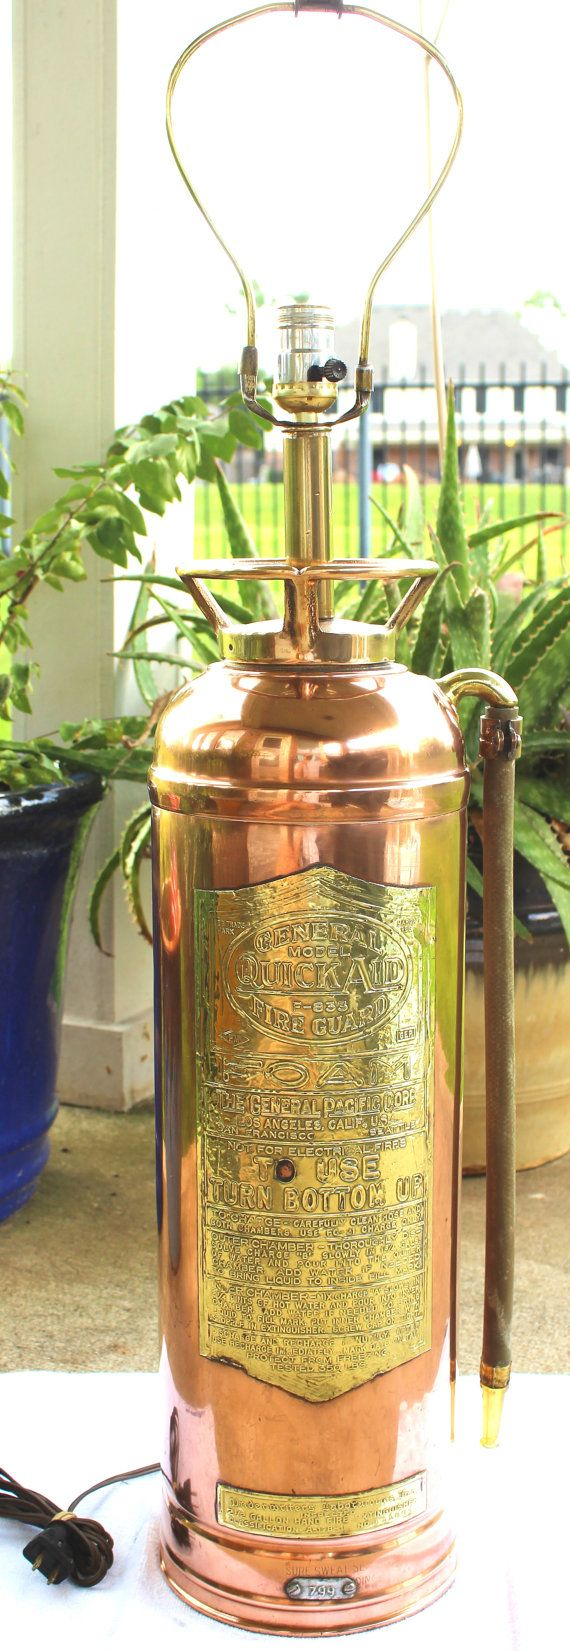 http://www.pinterhome.com/category/Fire-Extinguisher/ Vintage Fire Extinguisher Lamp Copper Brass by DecorateInVintage